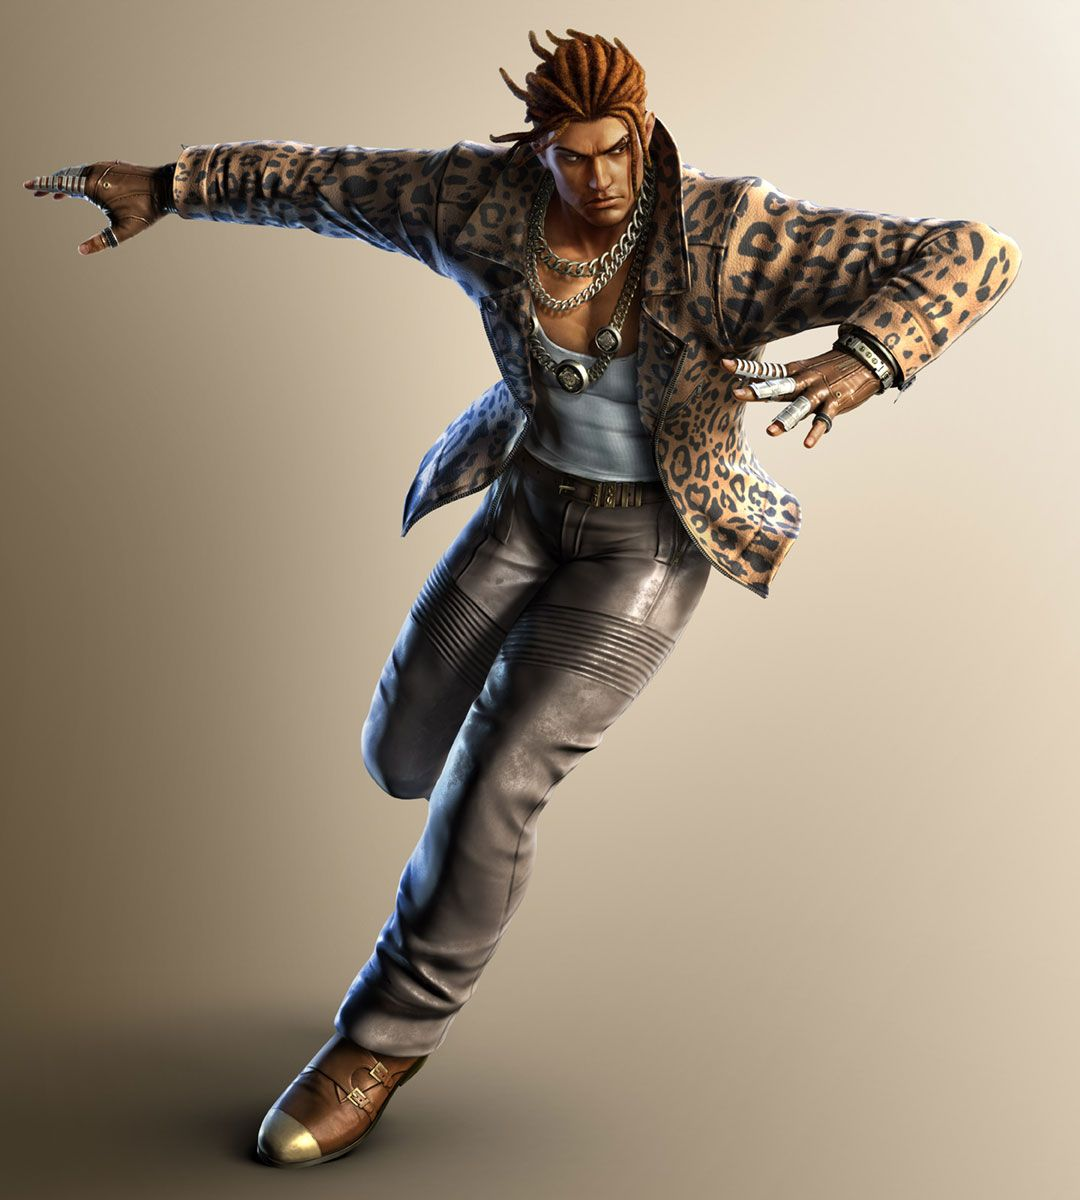 eddy gordo character art from tekken 7 fated retribution art artwork gaming videogames gamer gameart tekken 7 gordo eddie eddy gordo character art from tekken 7